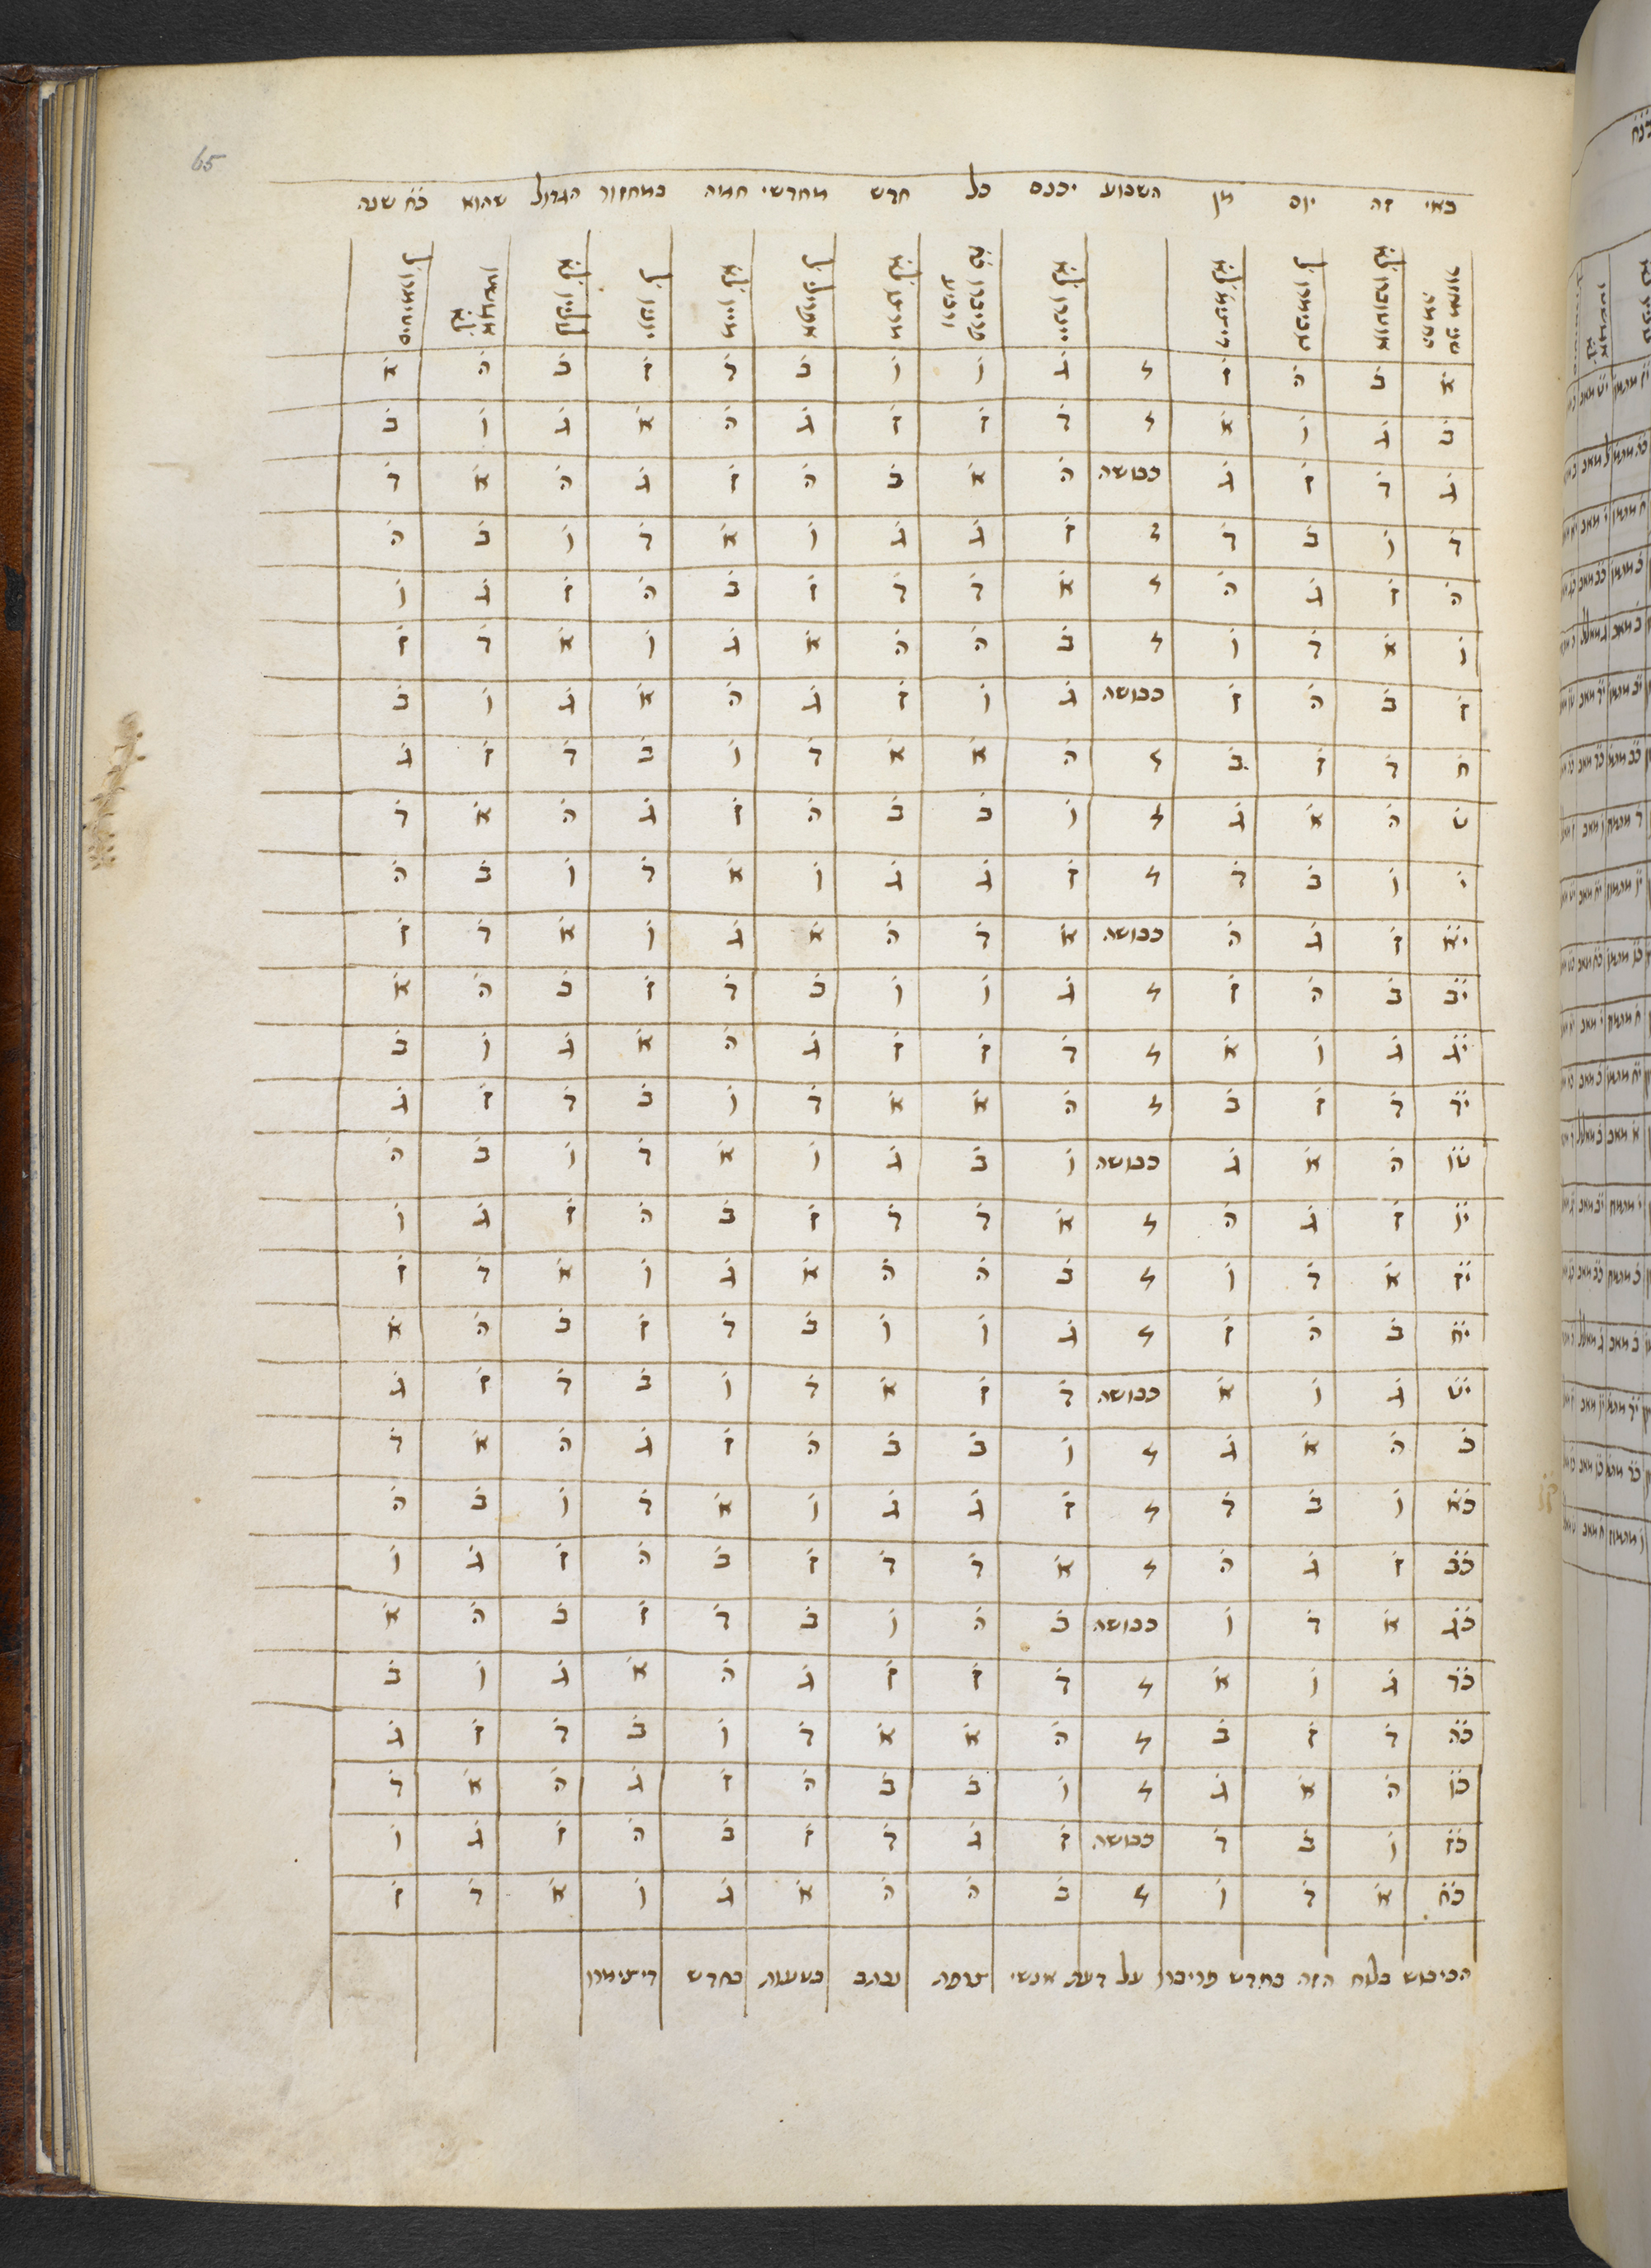 Table of calendarial dates, Miscellany: Various astronomical and philosophical works, Add MS 26899, Hebrew Manuscripts Digitisation Project, British Library